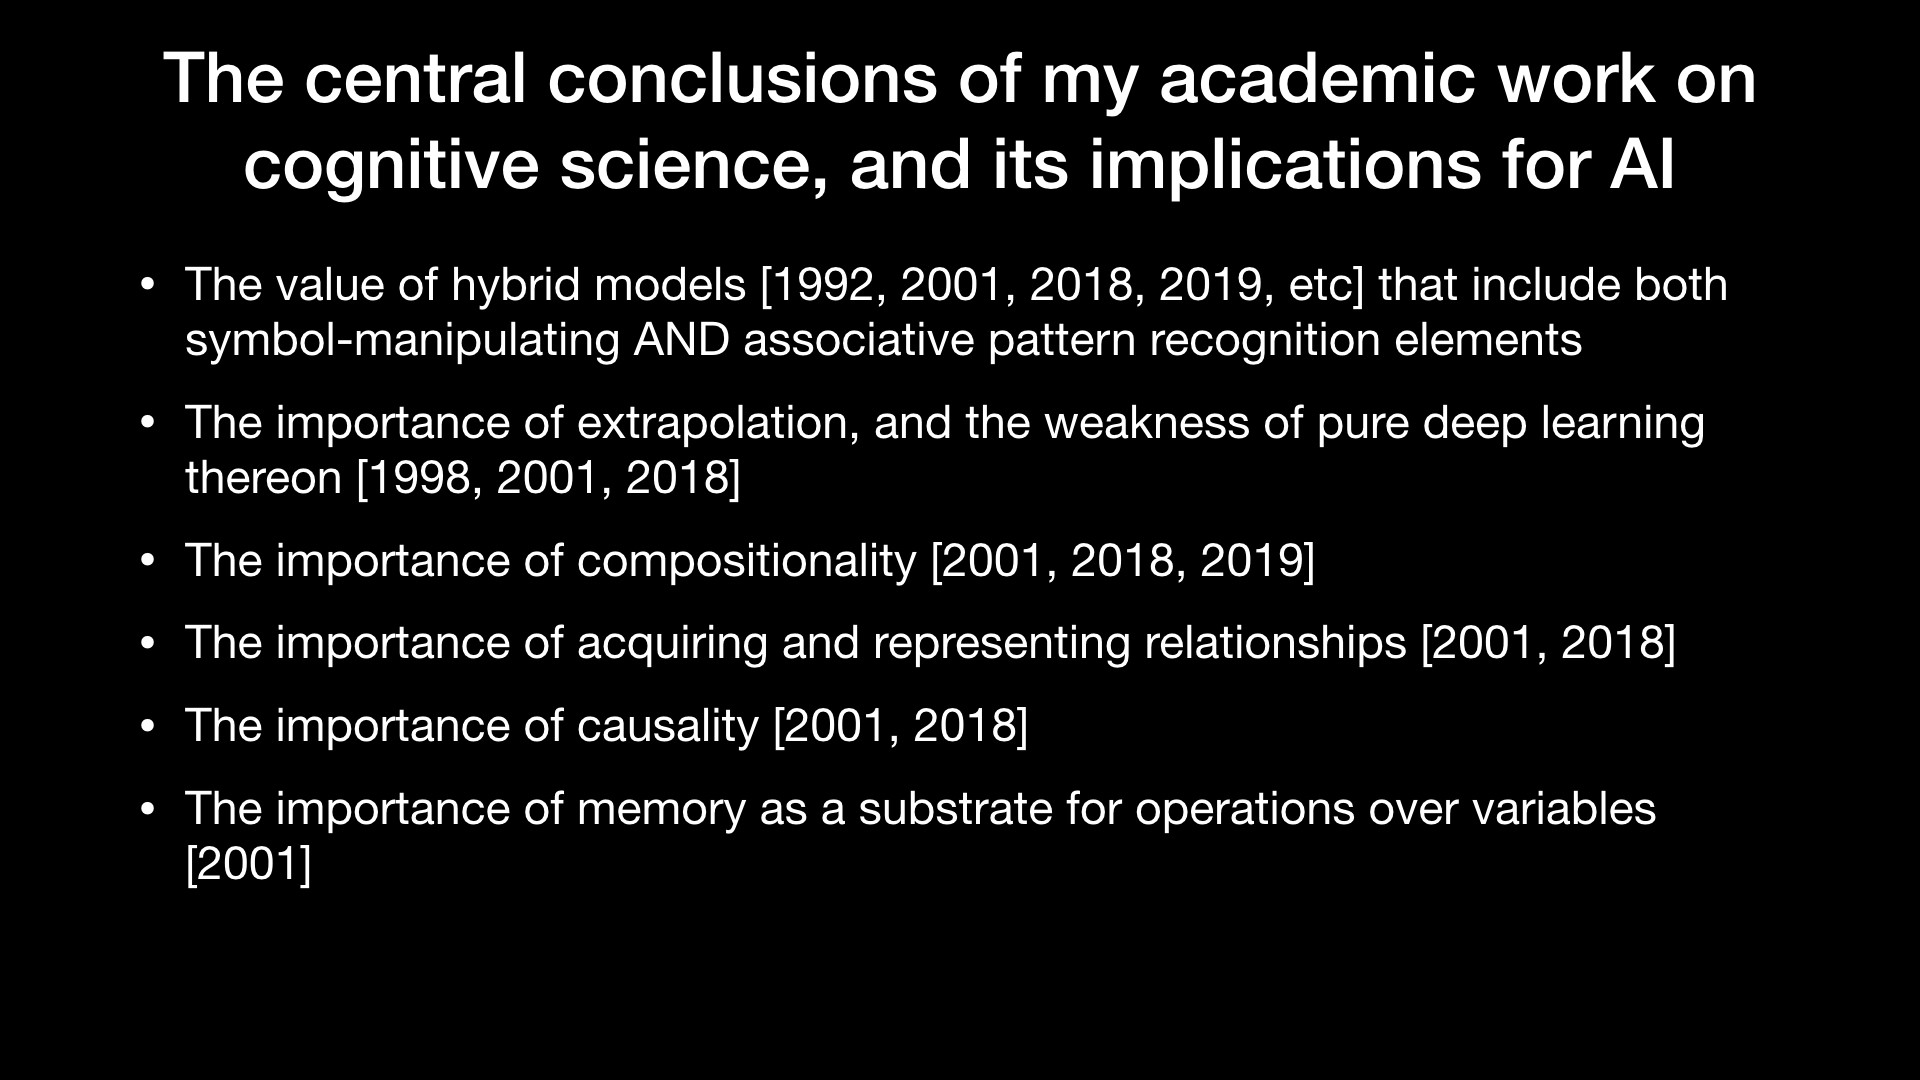 The central conclusions of my academic work on cognitive science, and its implications for AI